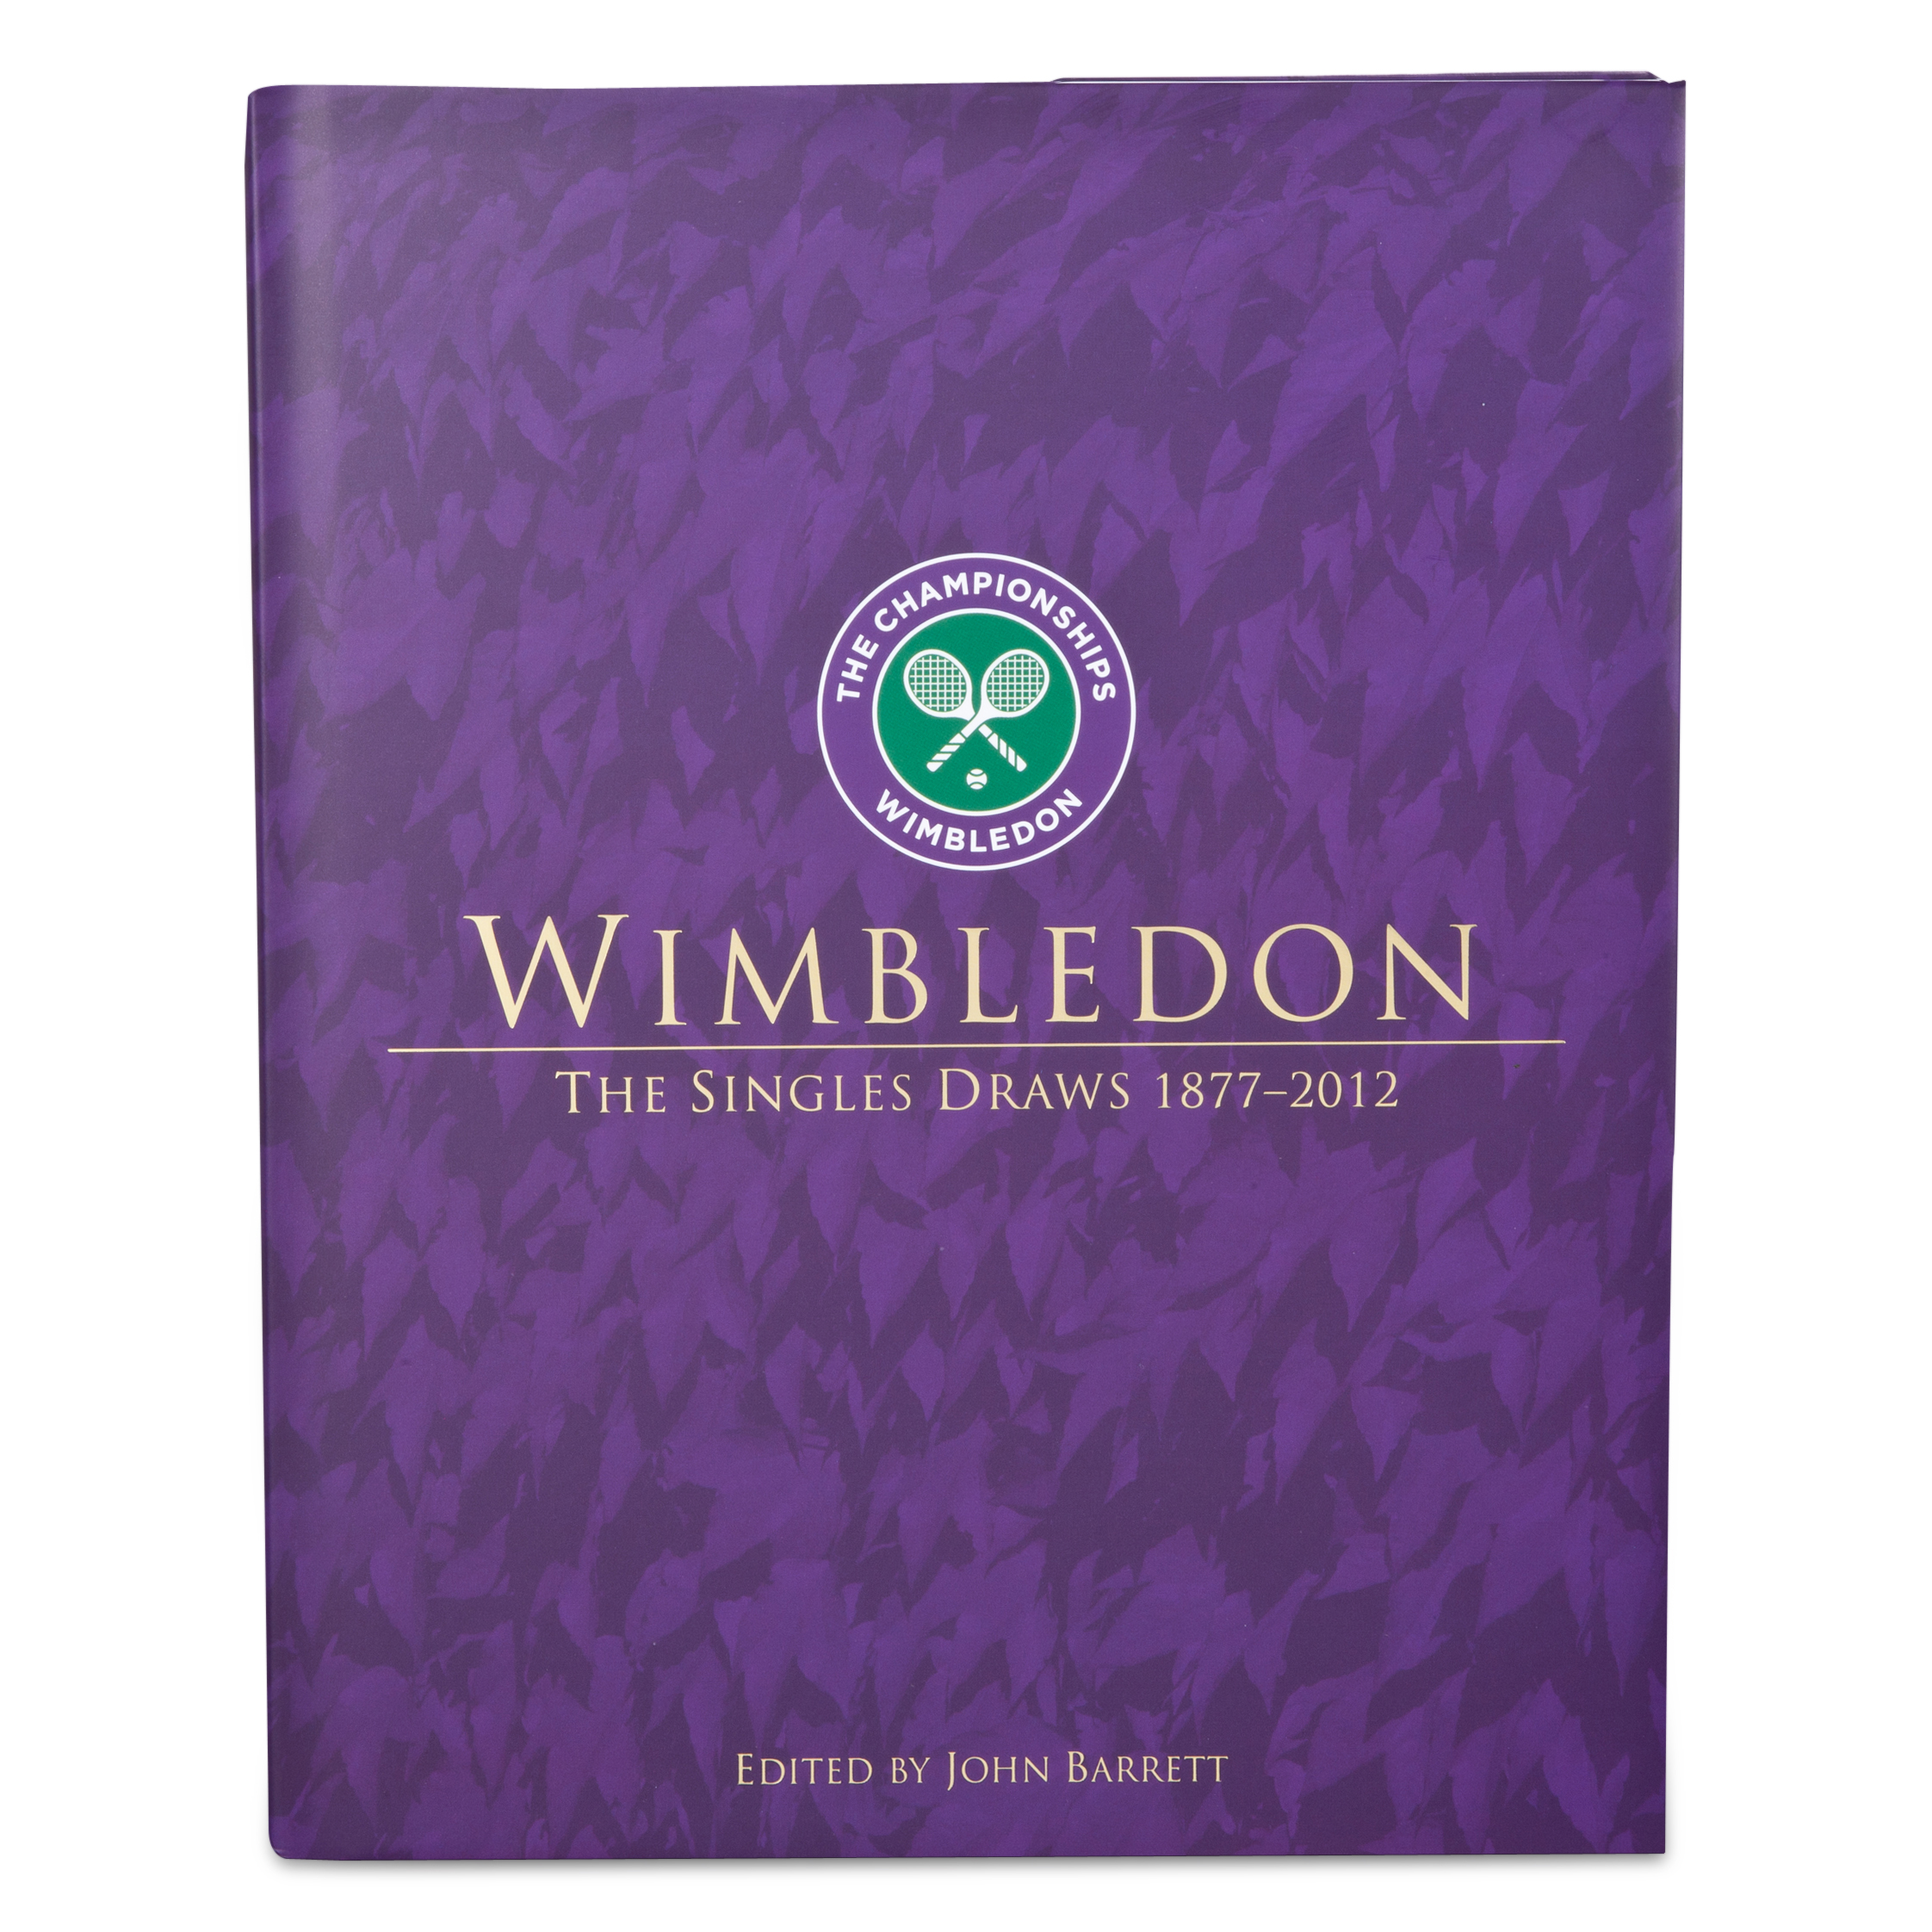 Wimbledon The Singles Draws 1877 - 2012